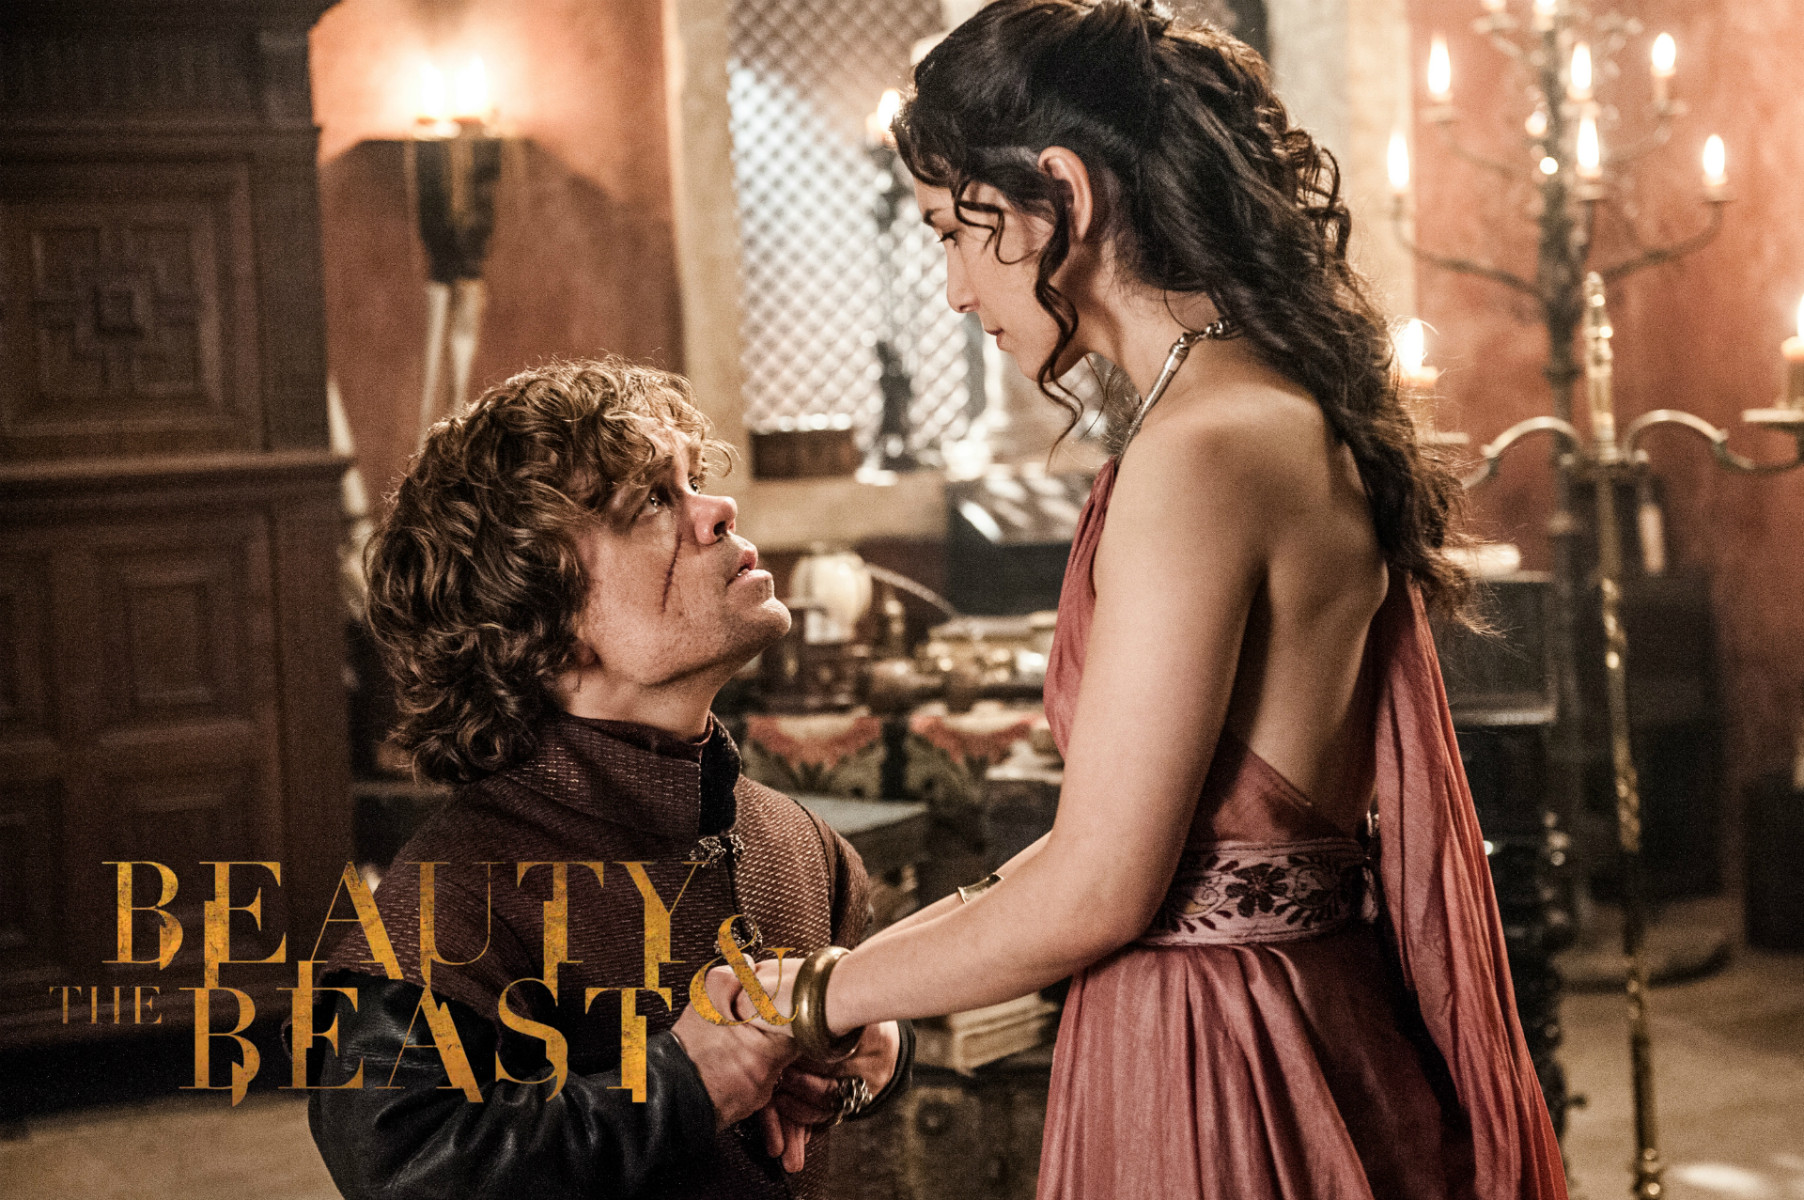 Tyrion Lannister and Shae in Beauty and The Beast